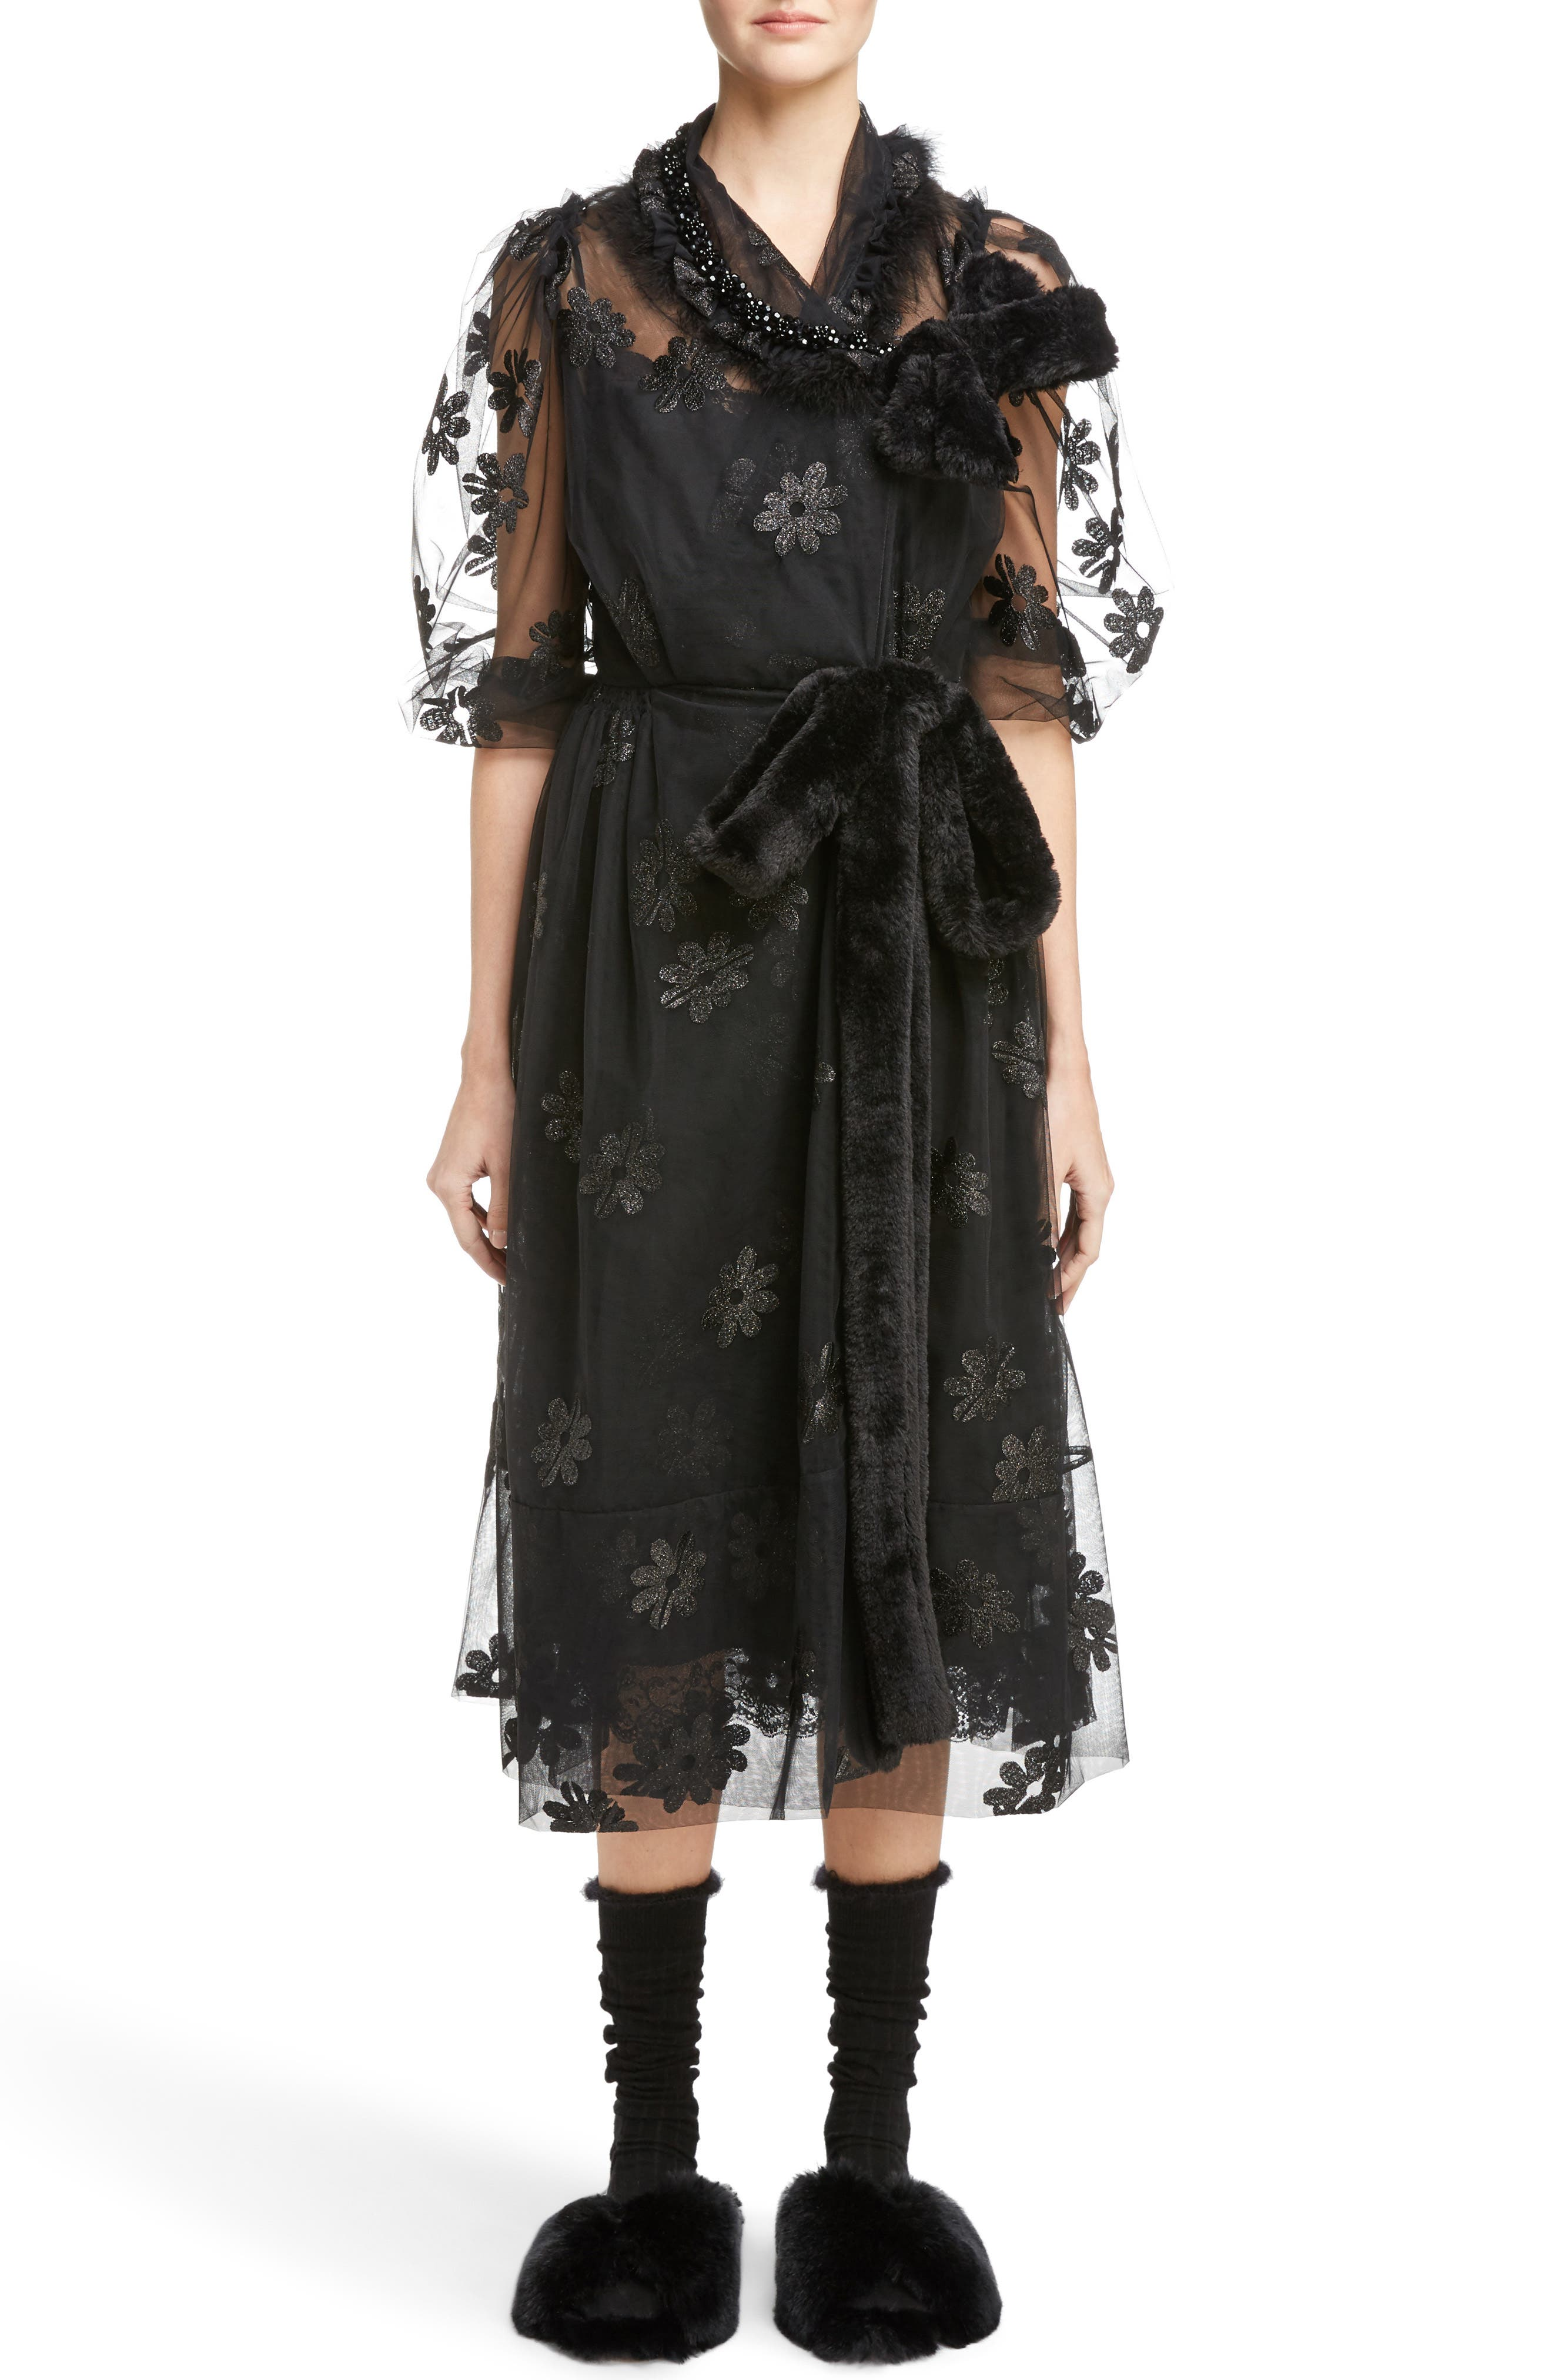 Main Image - Simone Rocha Teddy Floral Embroidered Tulle Dress with Feather and Faux Fur Trim